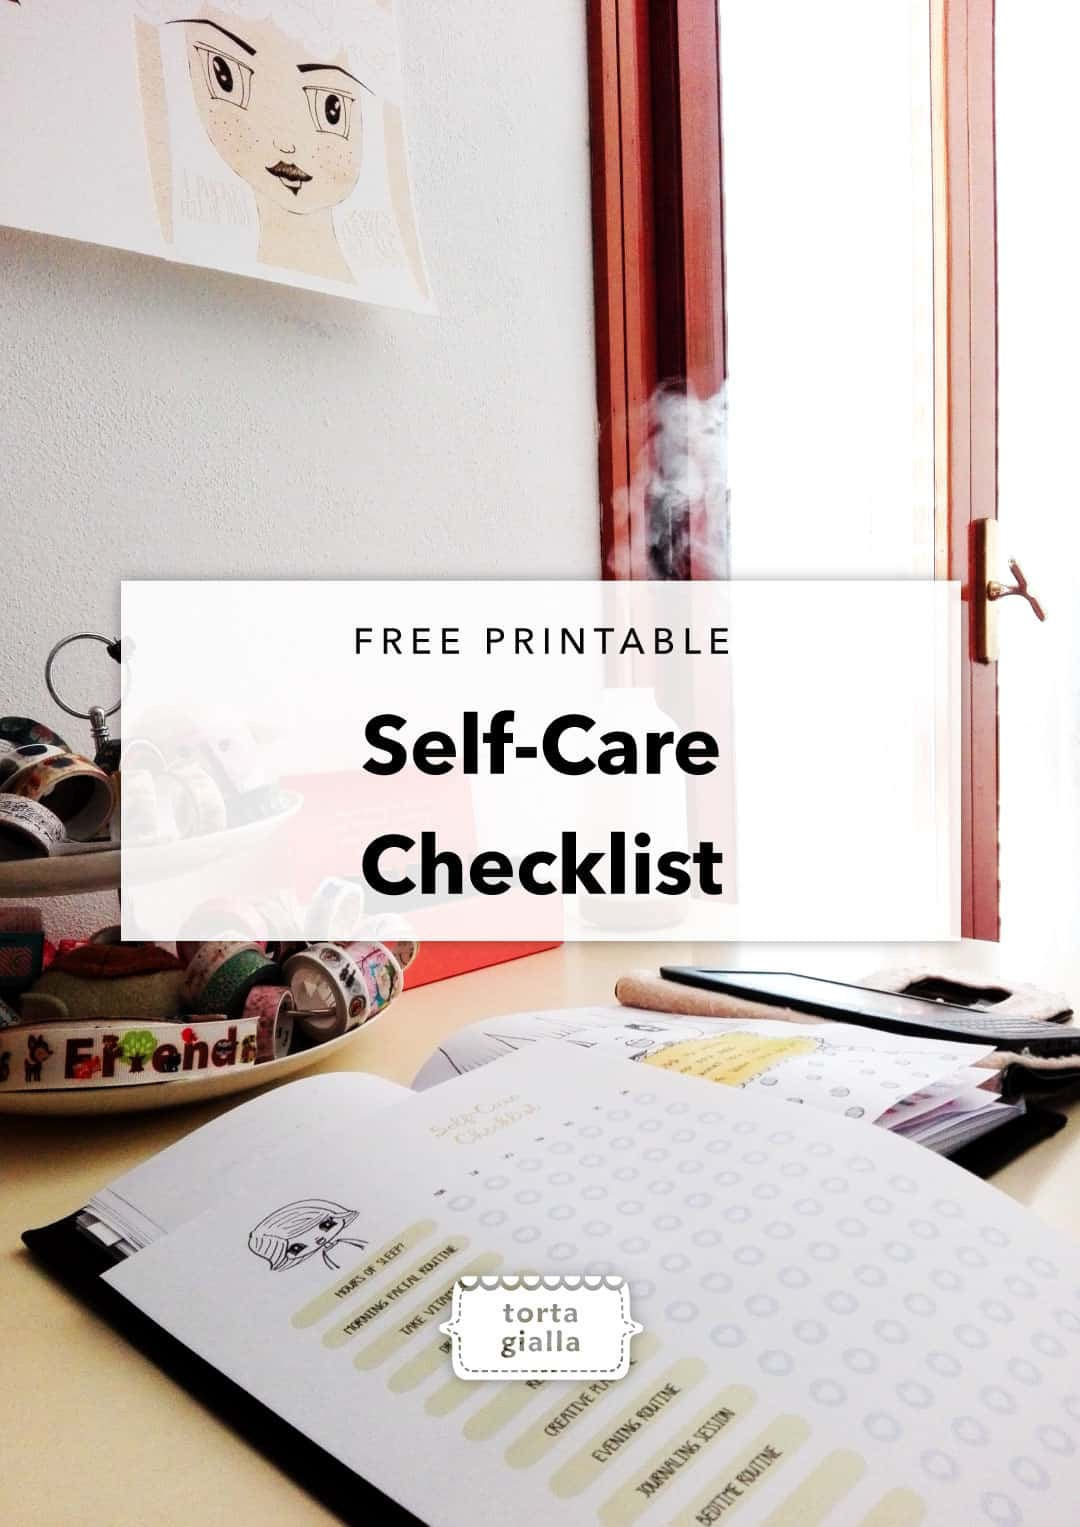 Self-Care Checklist | Free printable download